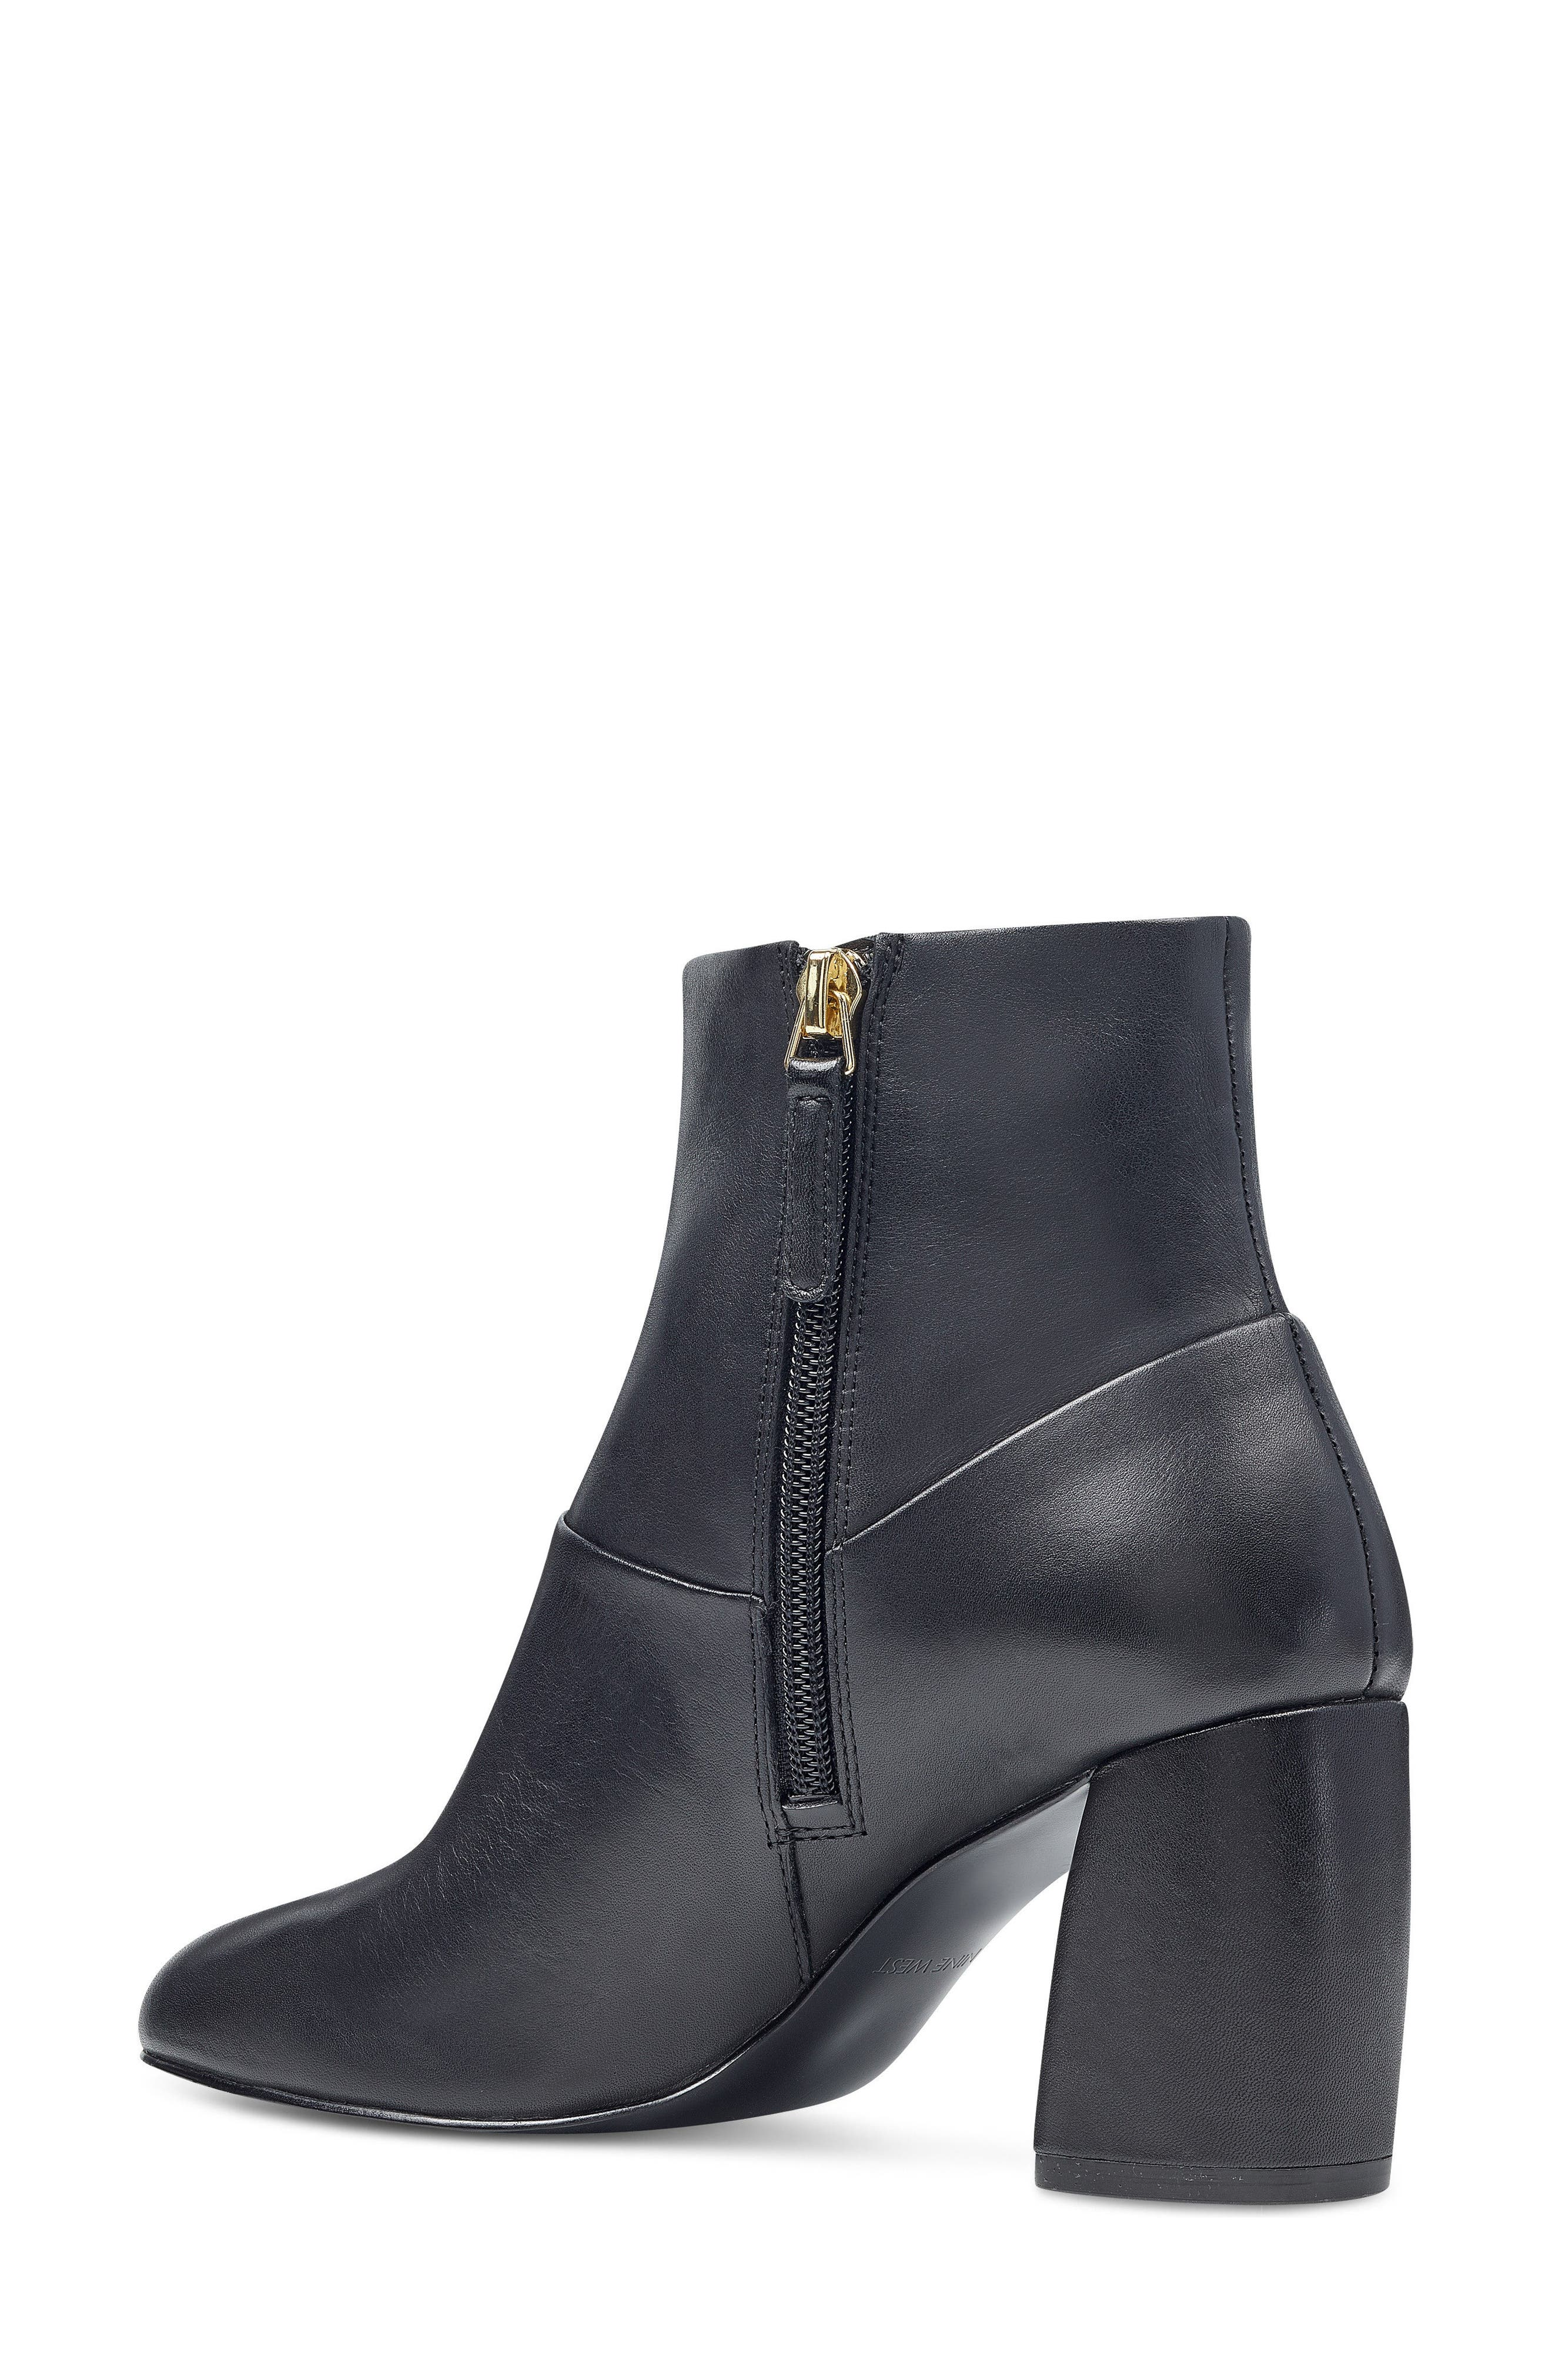 Kirtley Bootie,                             Alternate thumbnail 2, color,                             001